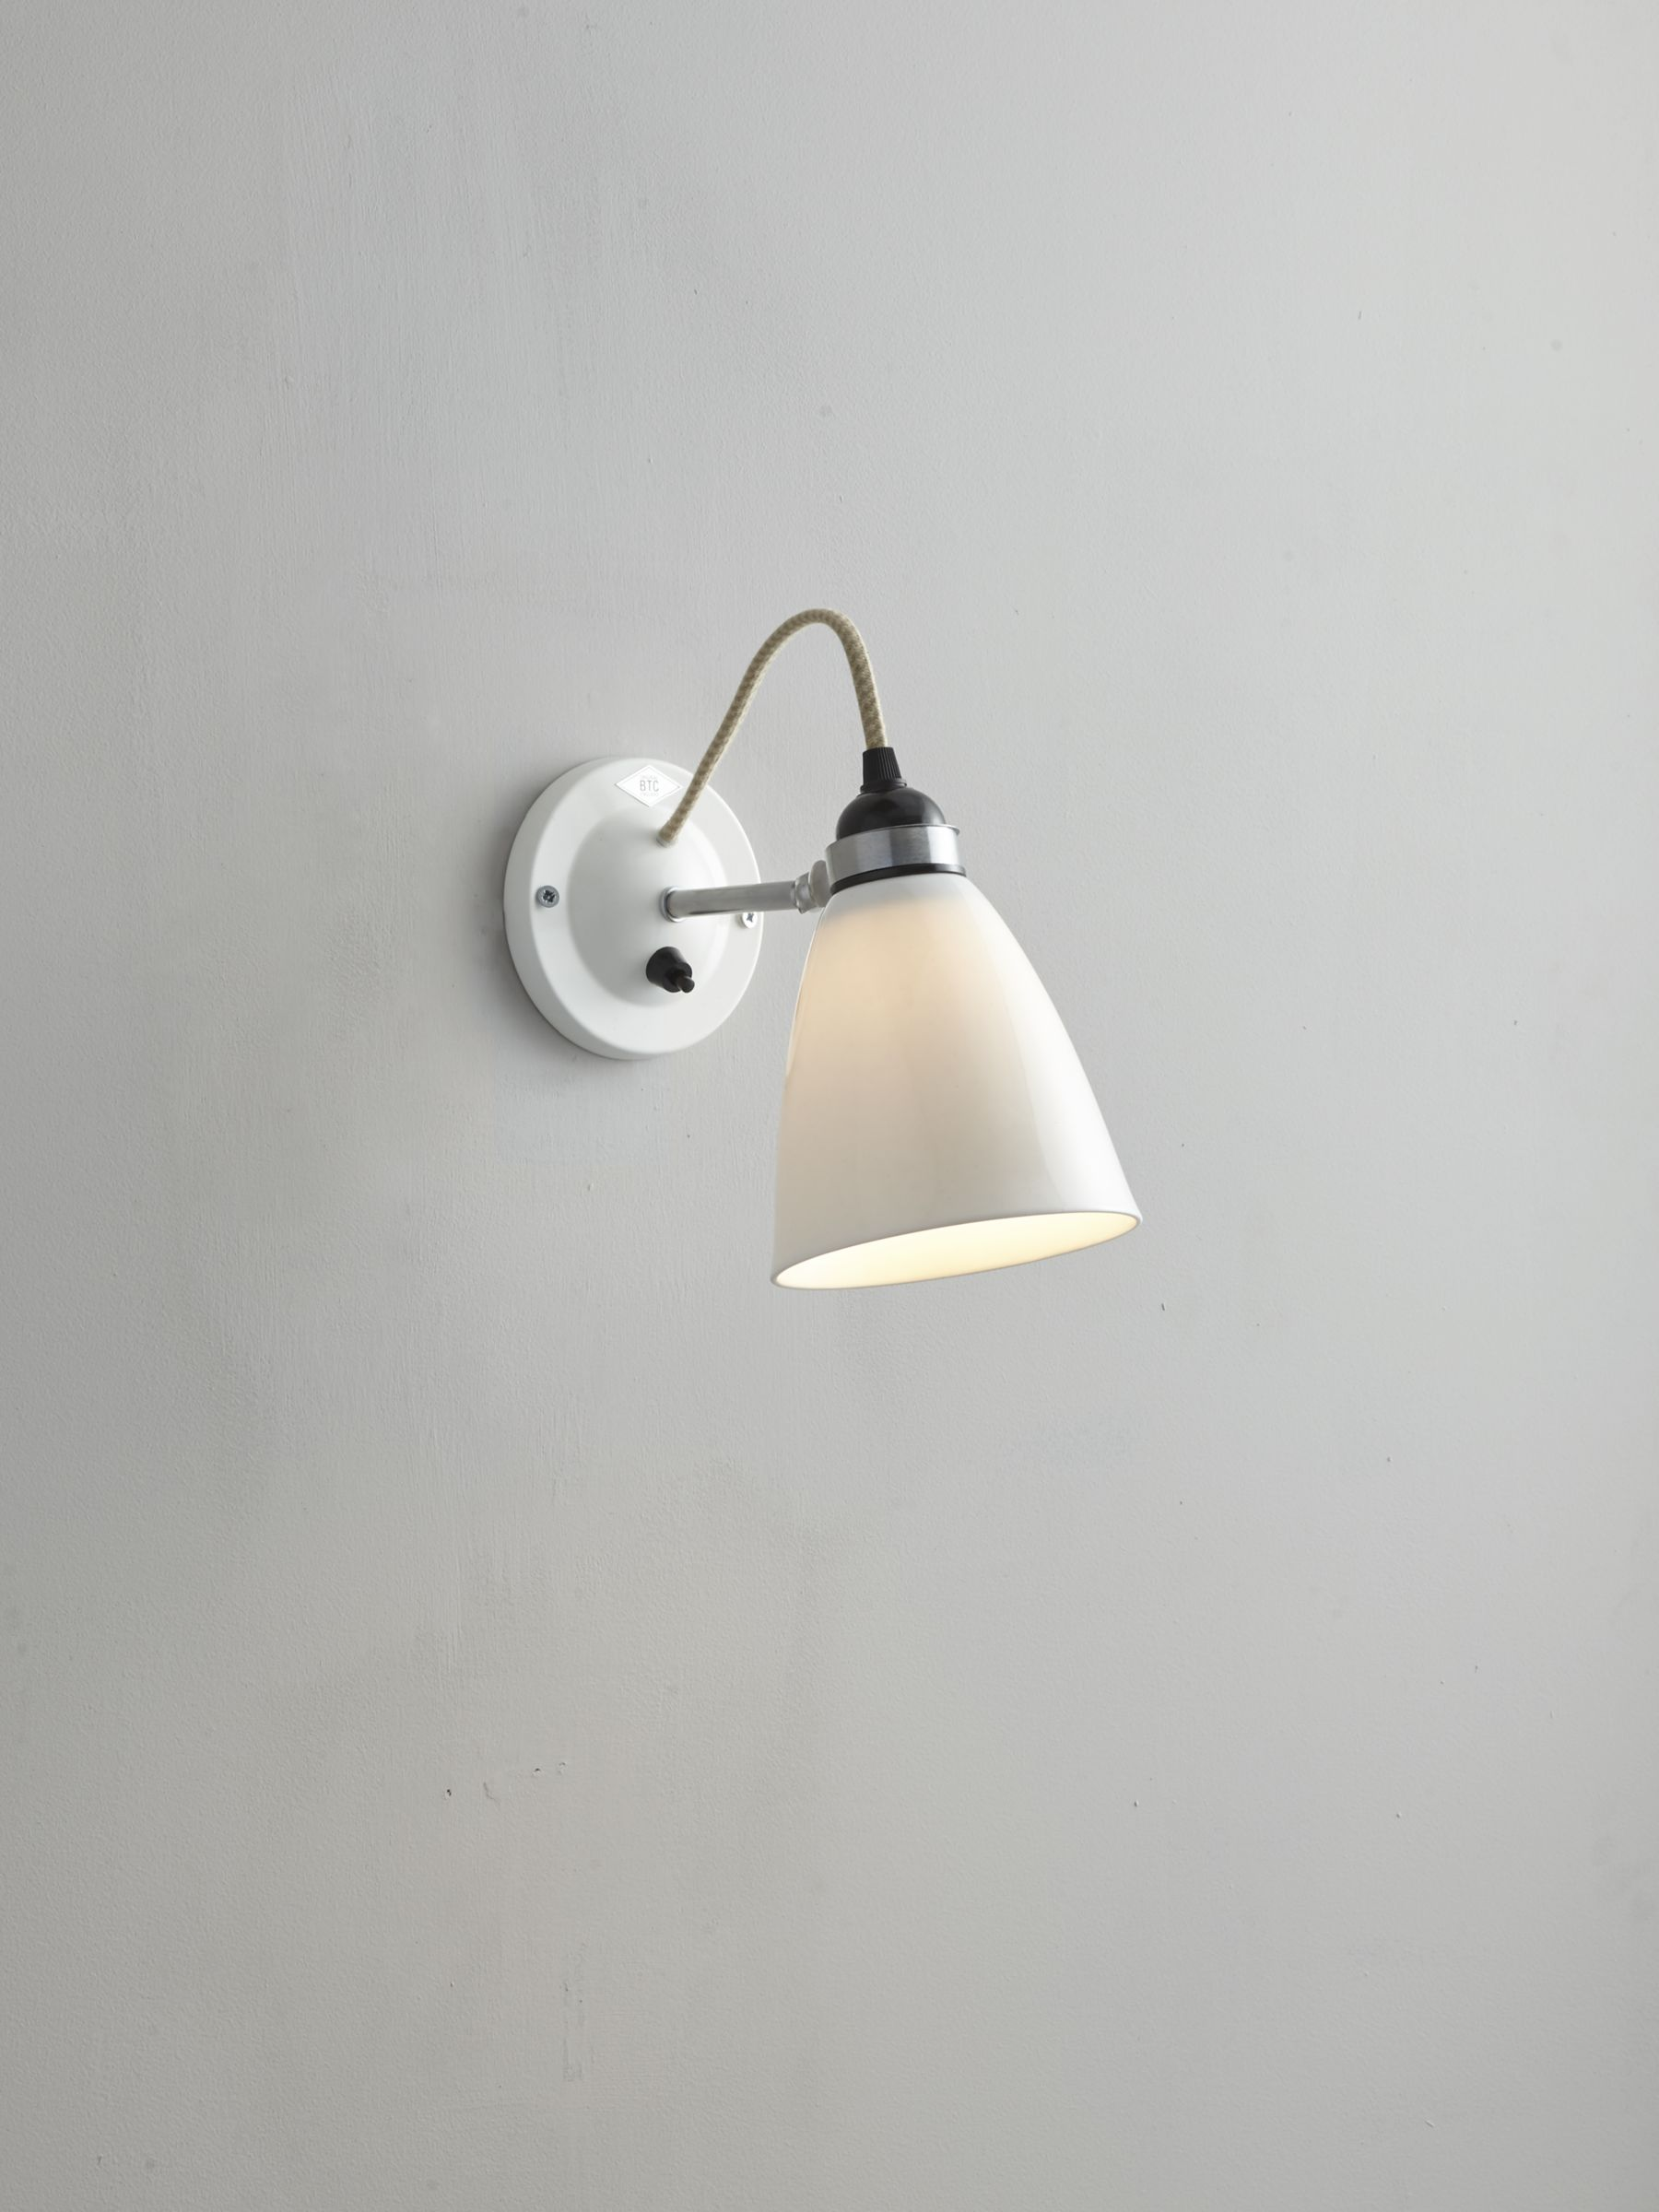 Original btc hector dome switched wall light medium natural white original btc hector dome switched wall light medium natural white at john lewis aloadofball Choice Image